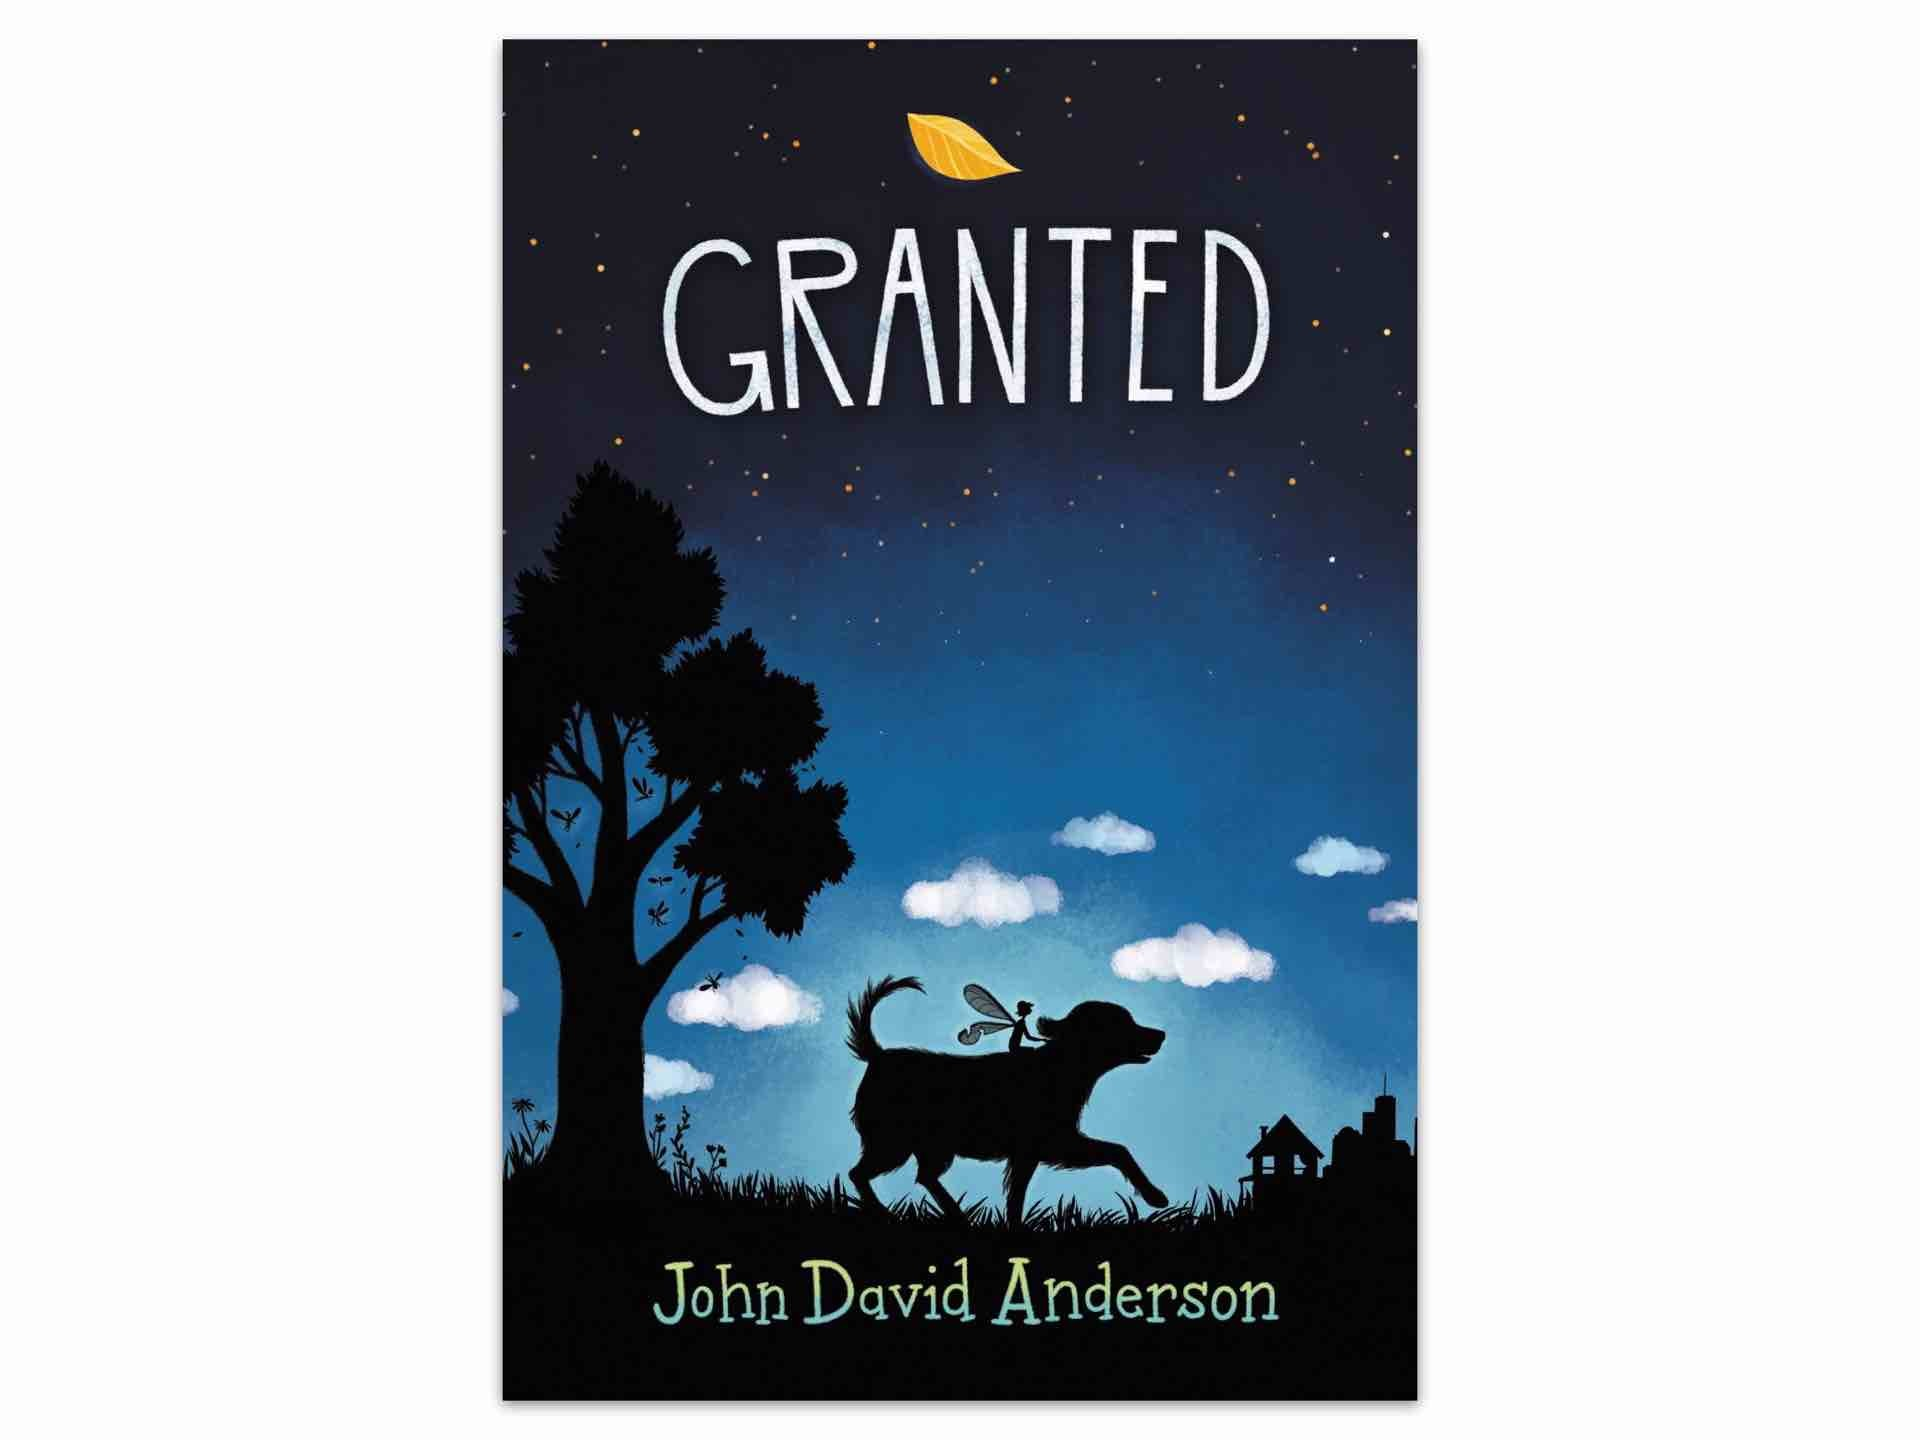 Granted by John David Anderson.